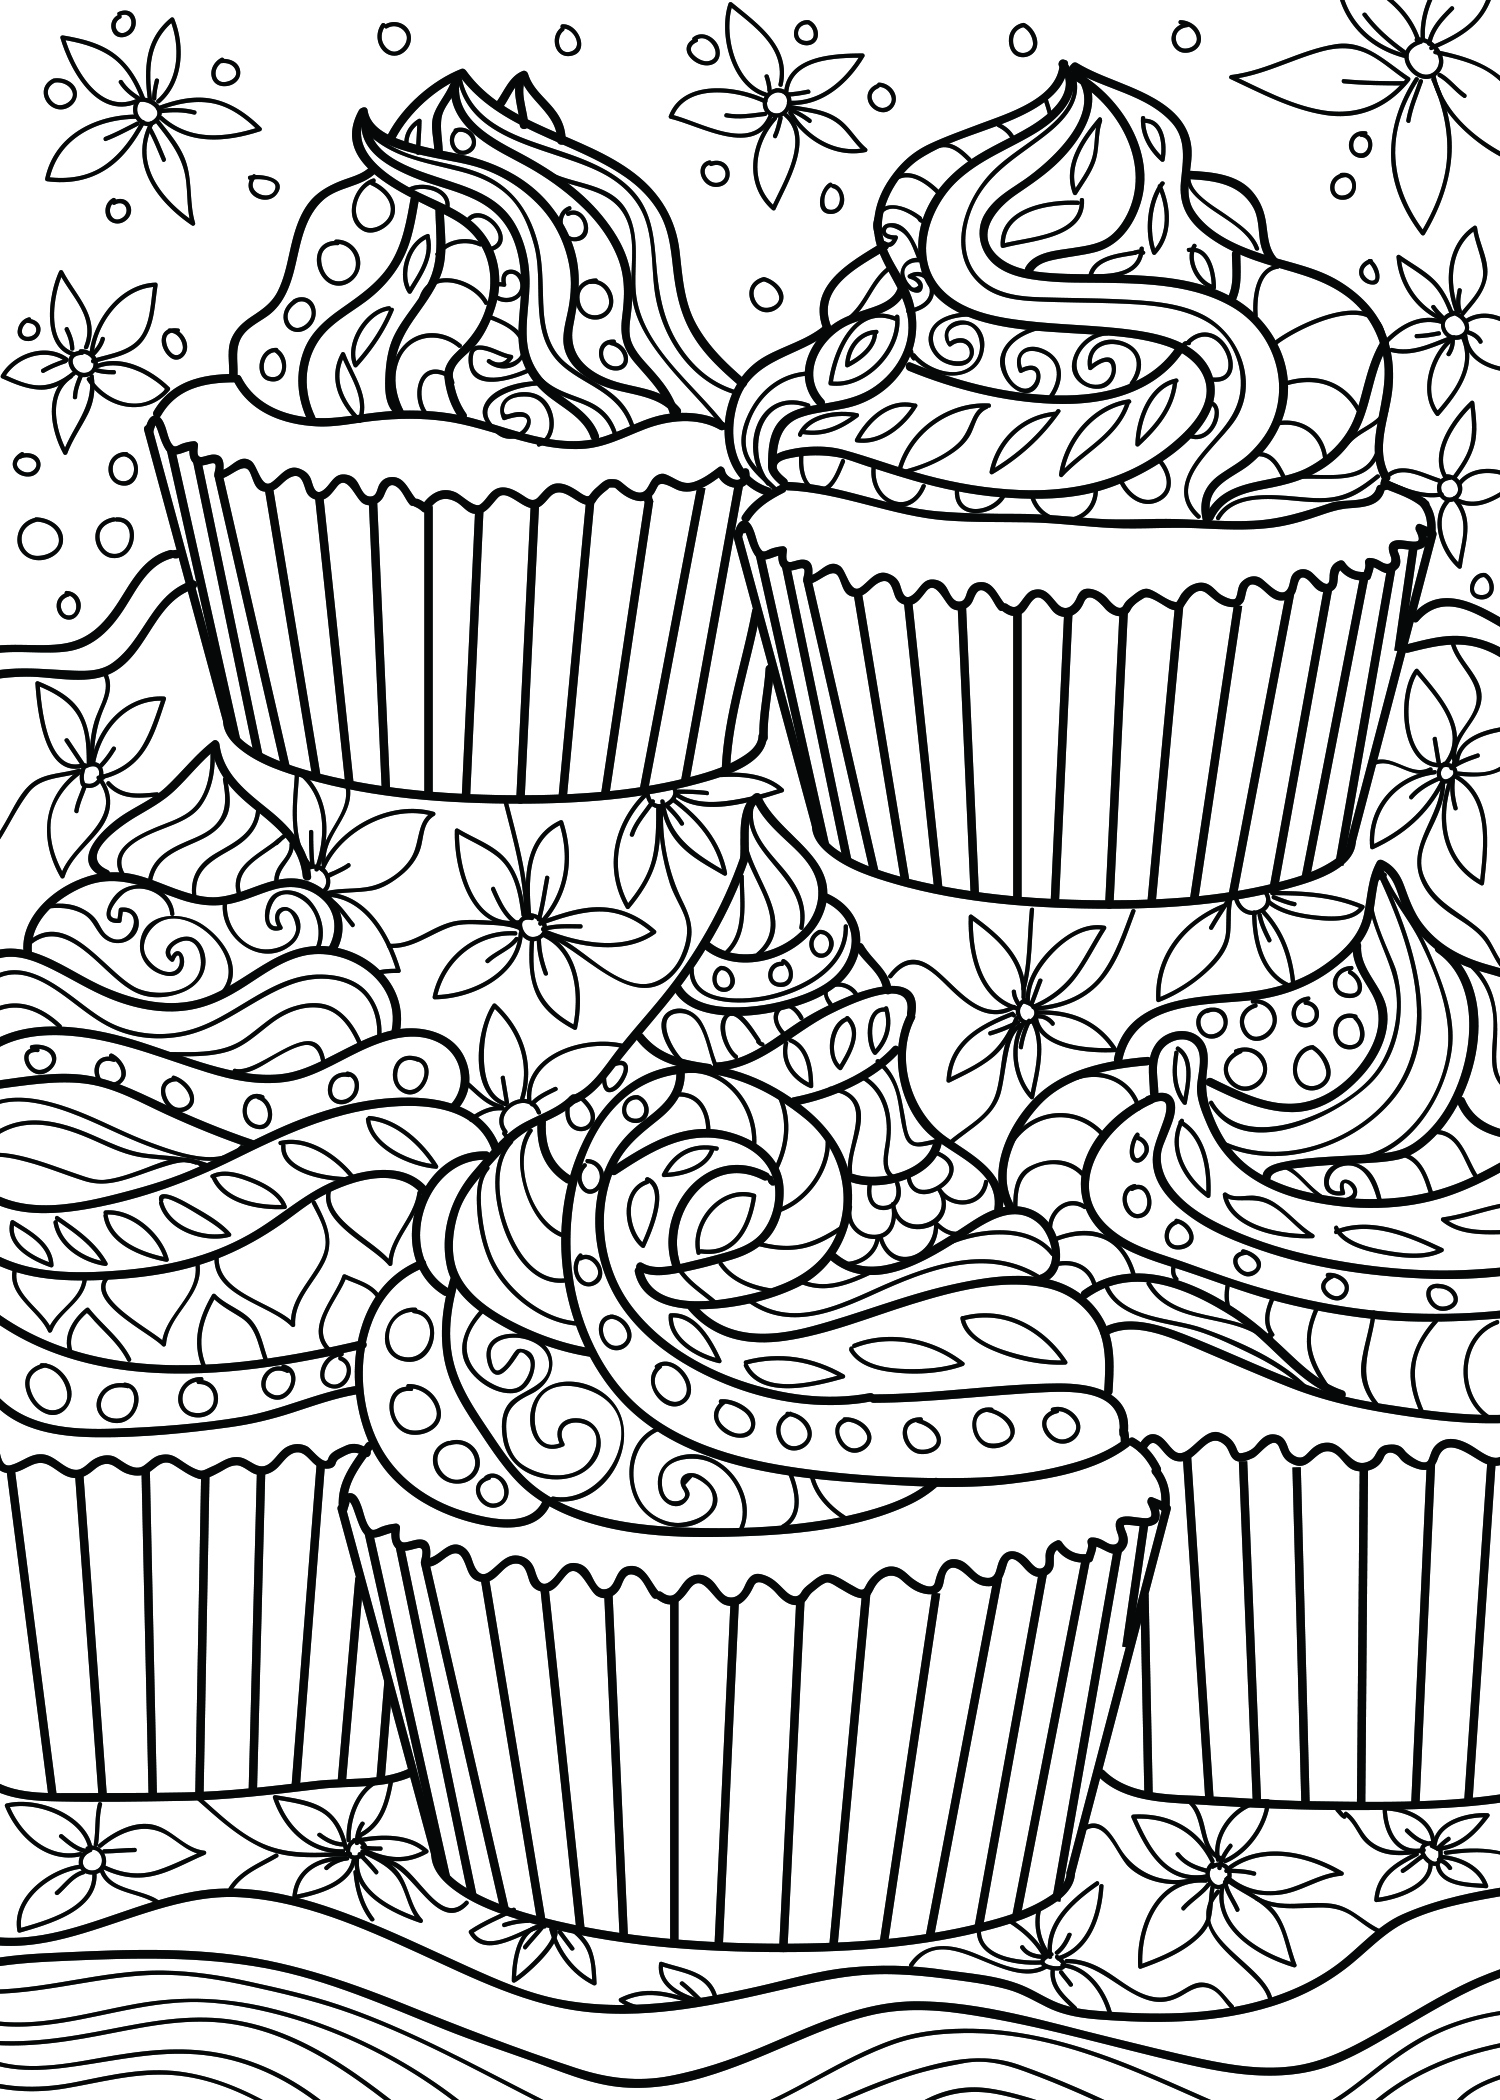 Cupcake Coloring Page Coloring